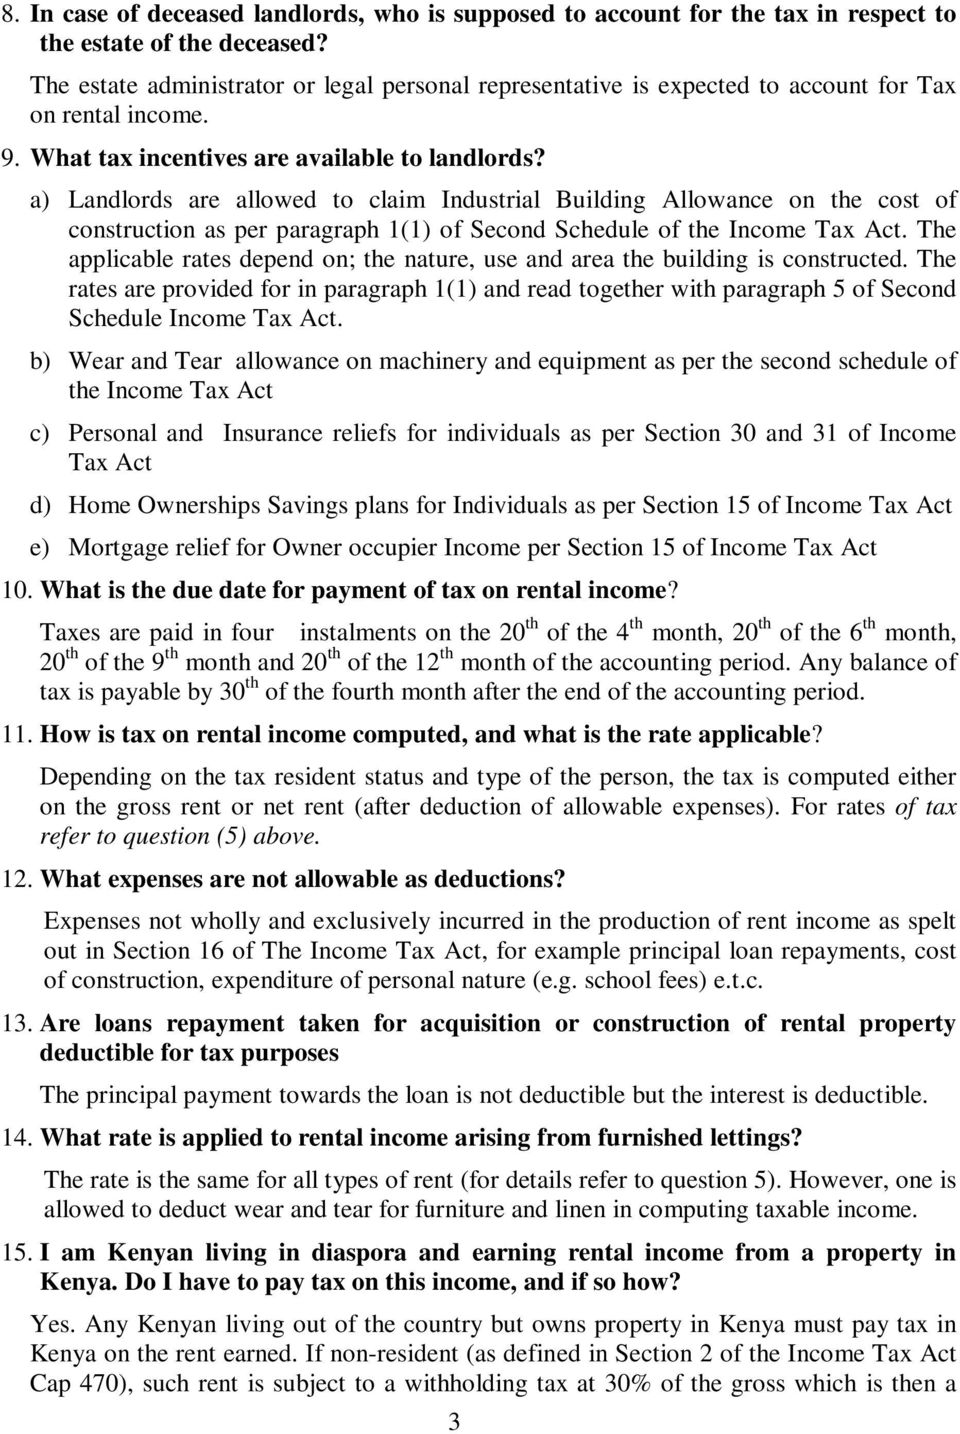 a) Landlords are allowed to claim Industrial Building Allowance on the cost of construction as per paragraph 1(1) of Second Schedule of the Income Tax Act.